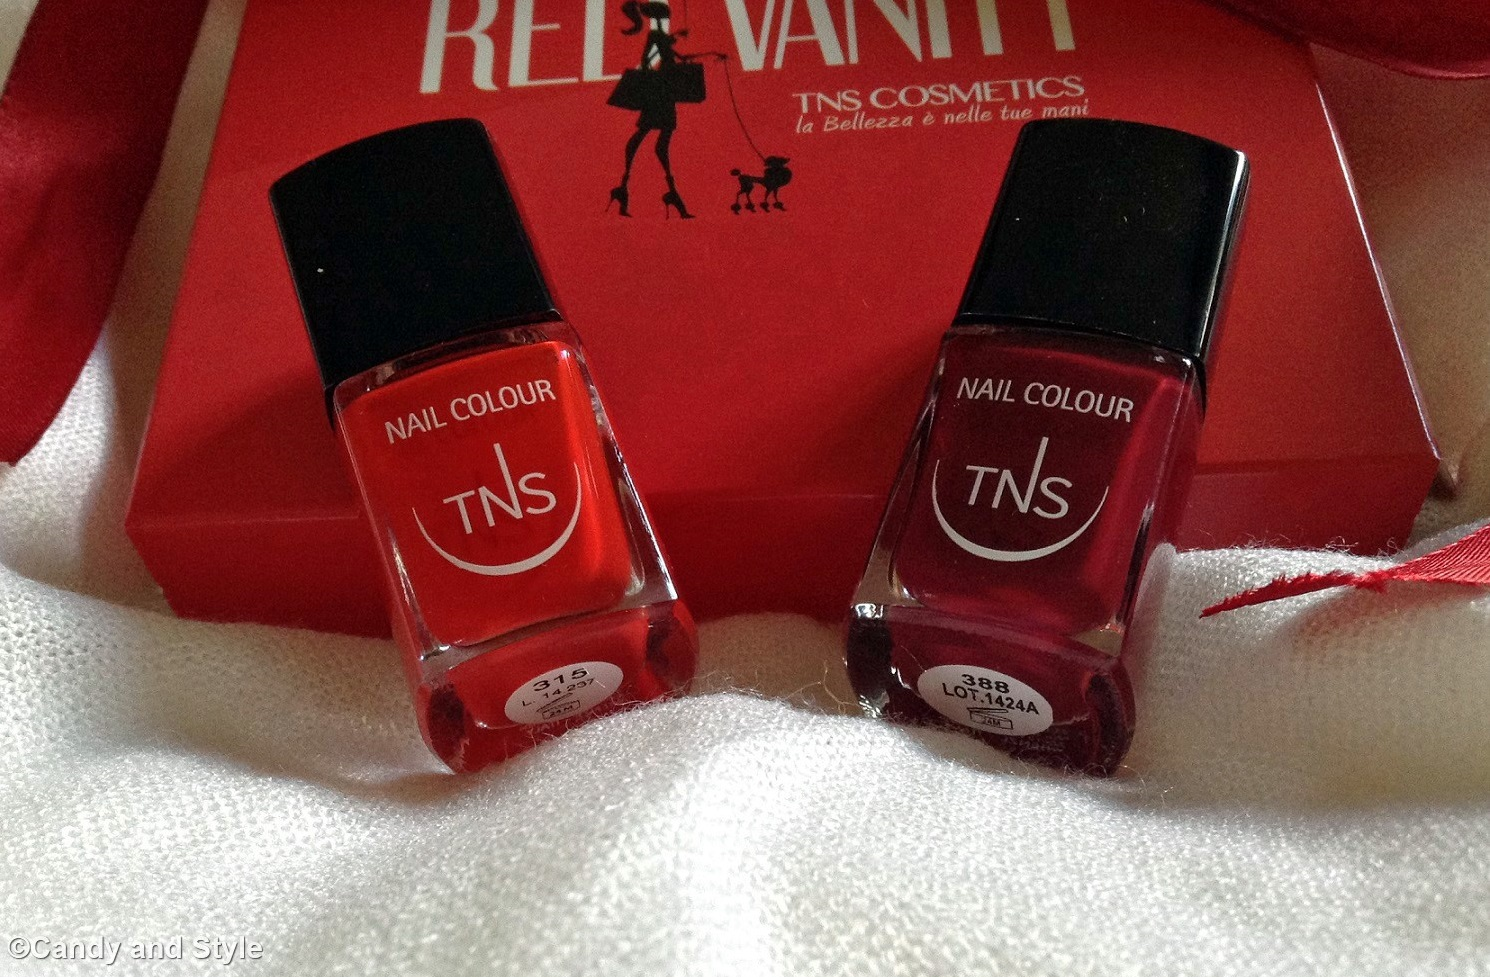 My Funny Valentine - Forever Soul | Collezione Red Vanity TNS Cosmetics